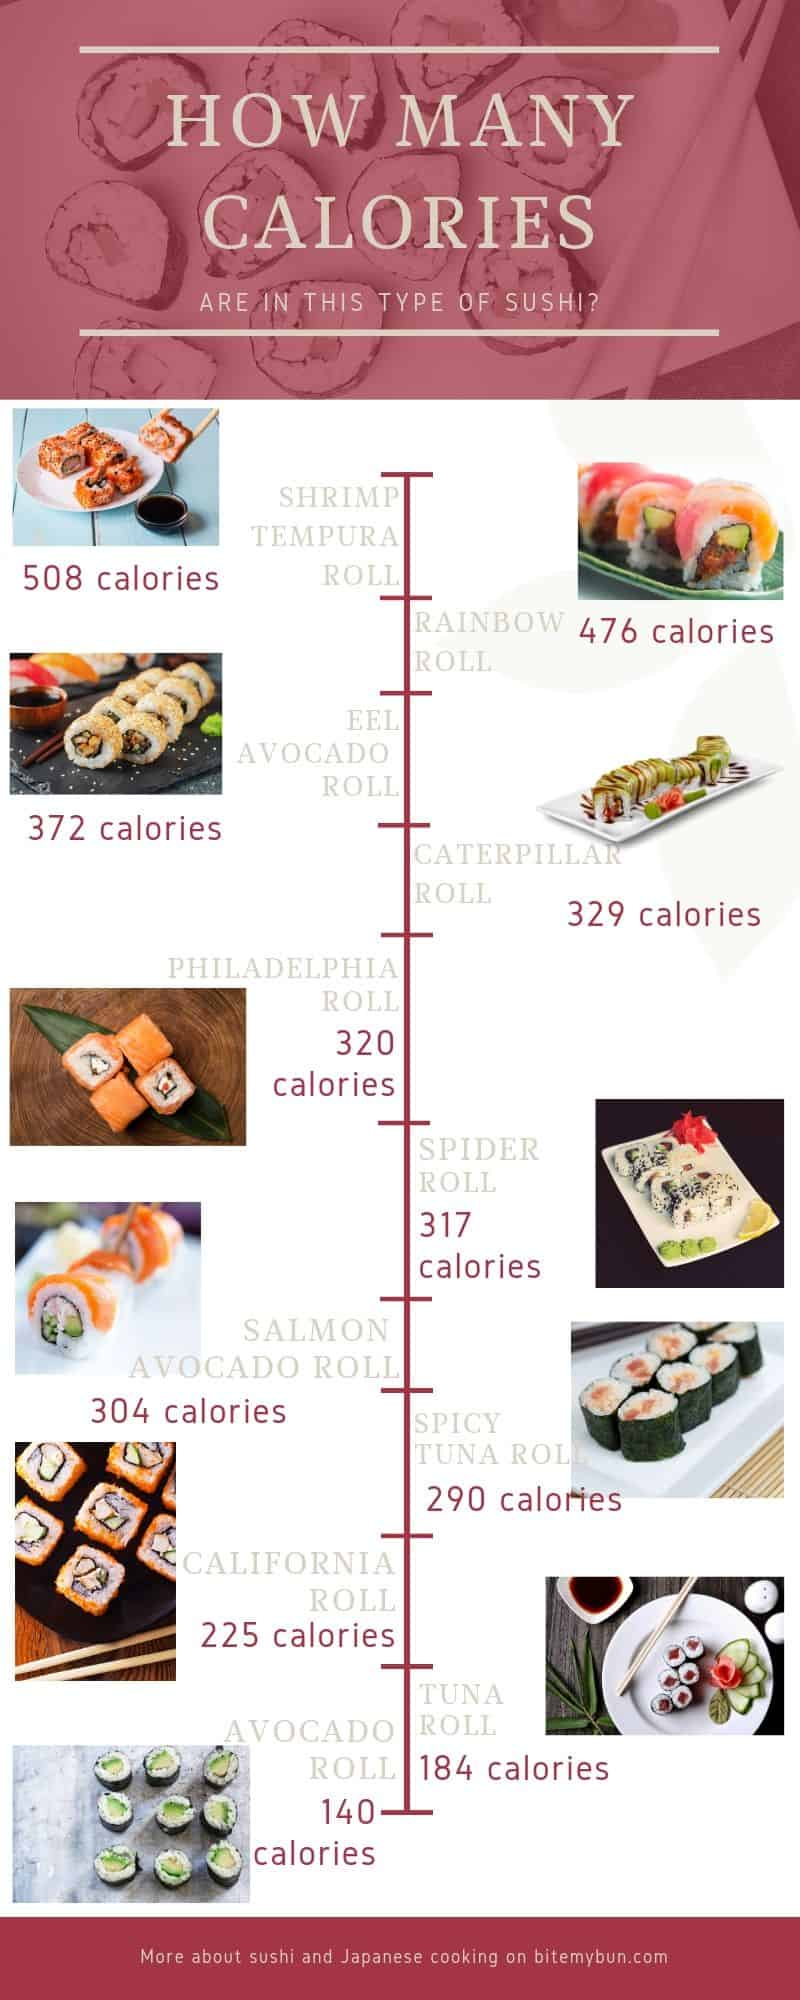 How many calories are in these different types of sushi